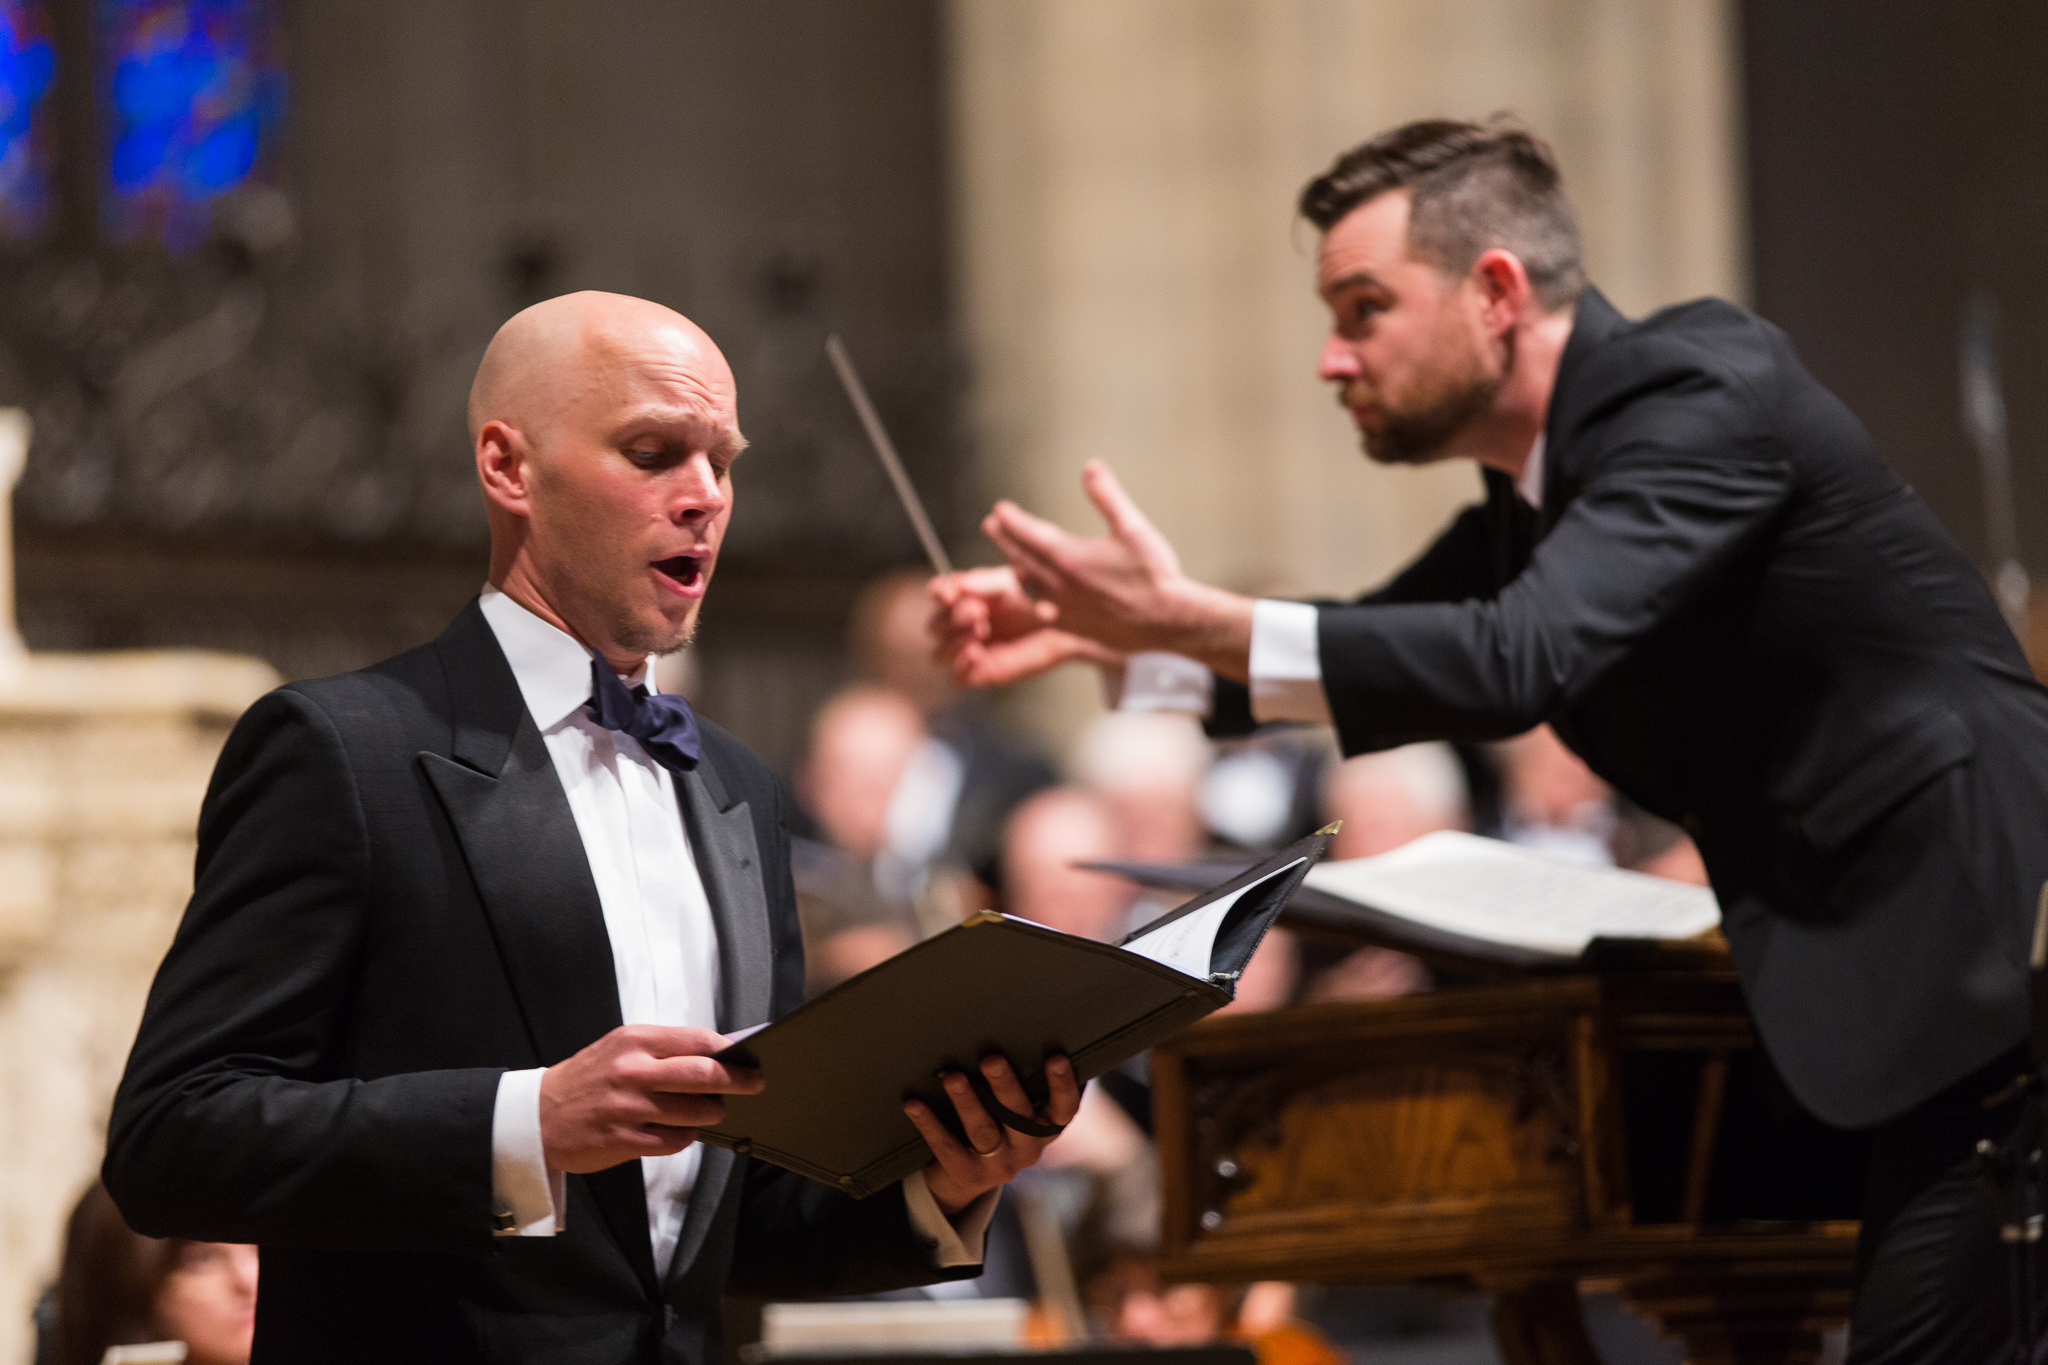 Vaughan Williams     Five Mystical Songs   with conductor Patrick DupréQuigley at the National Cathedral, Washington D.C.